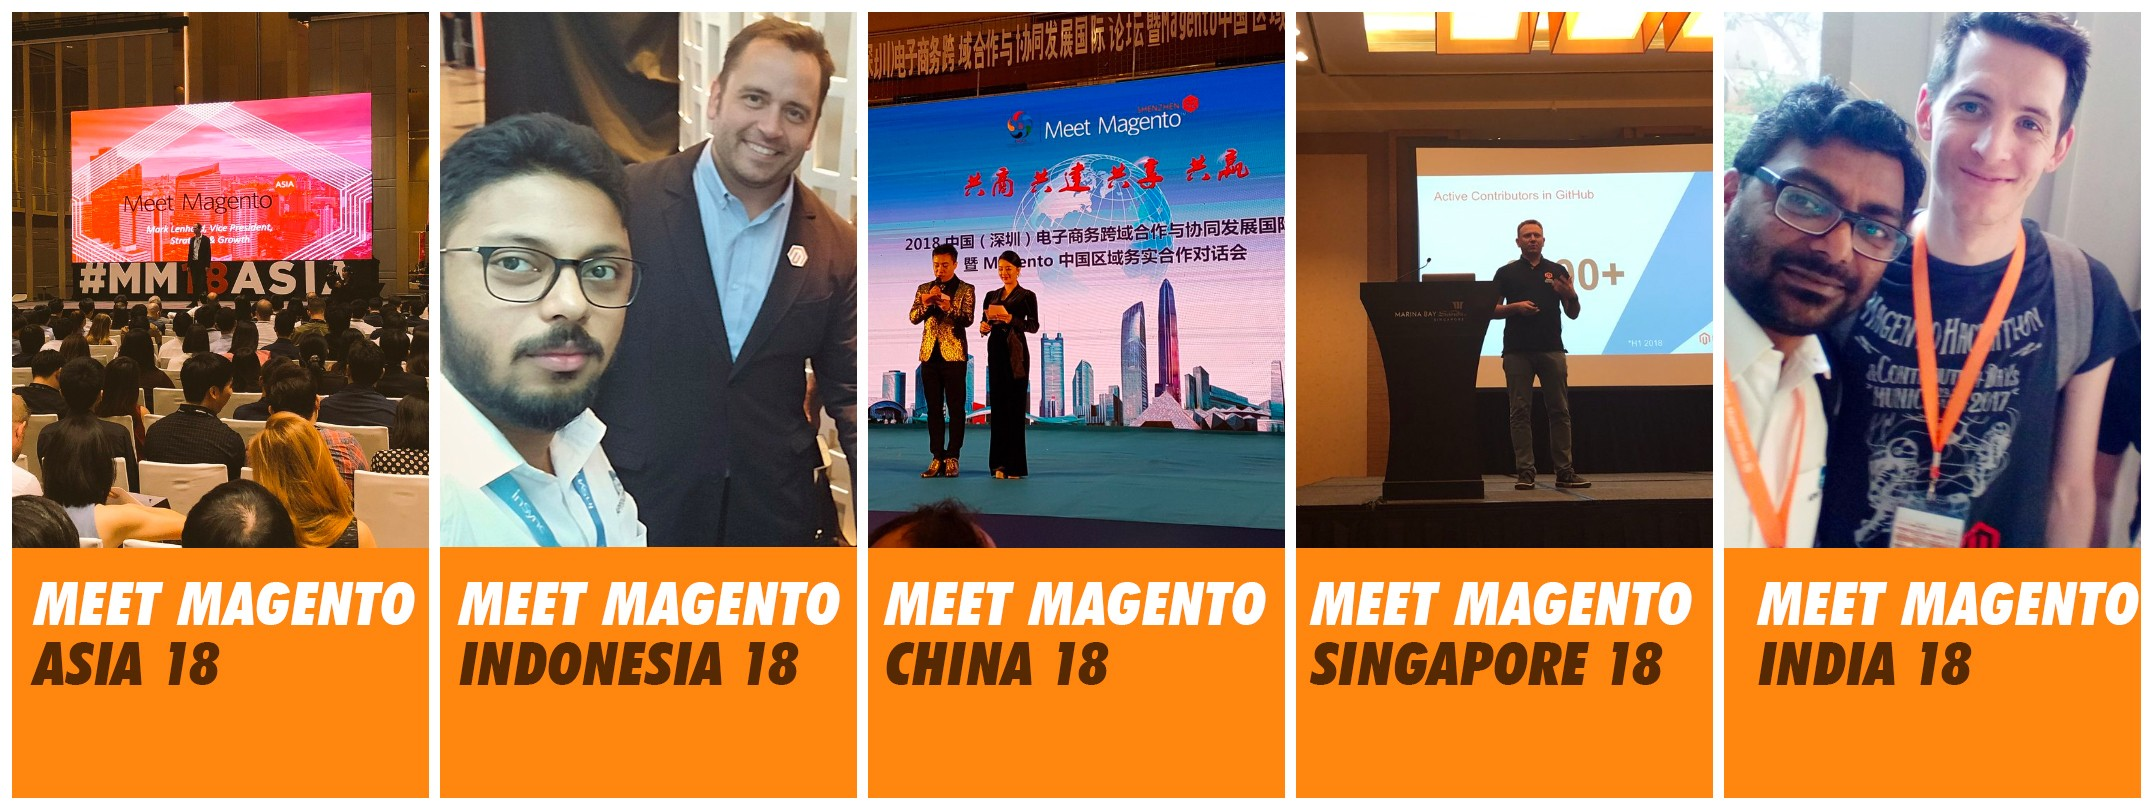 APPSeCONNECT-at-Meet-Magento-events-2018